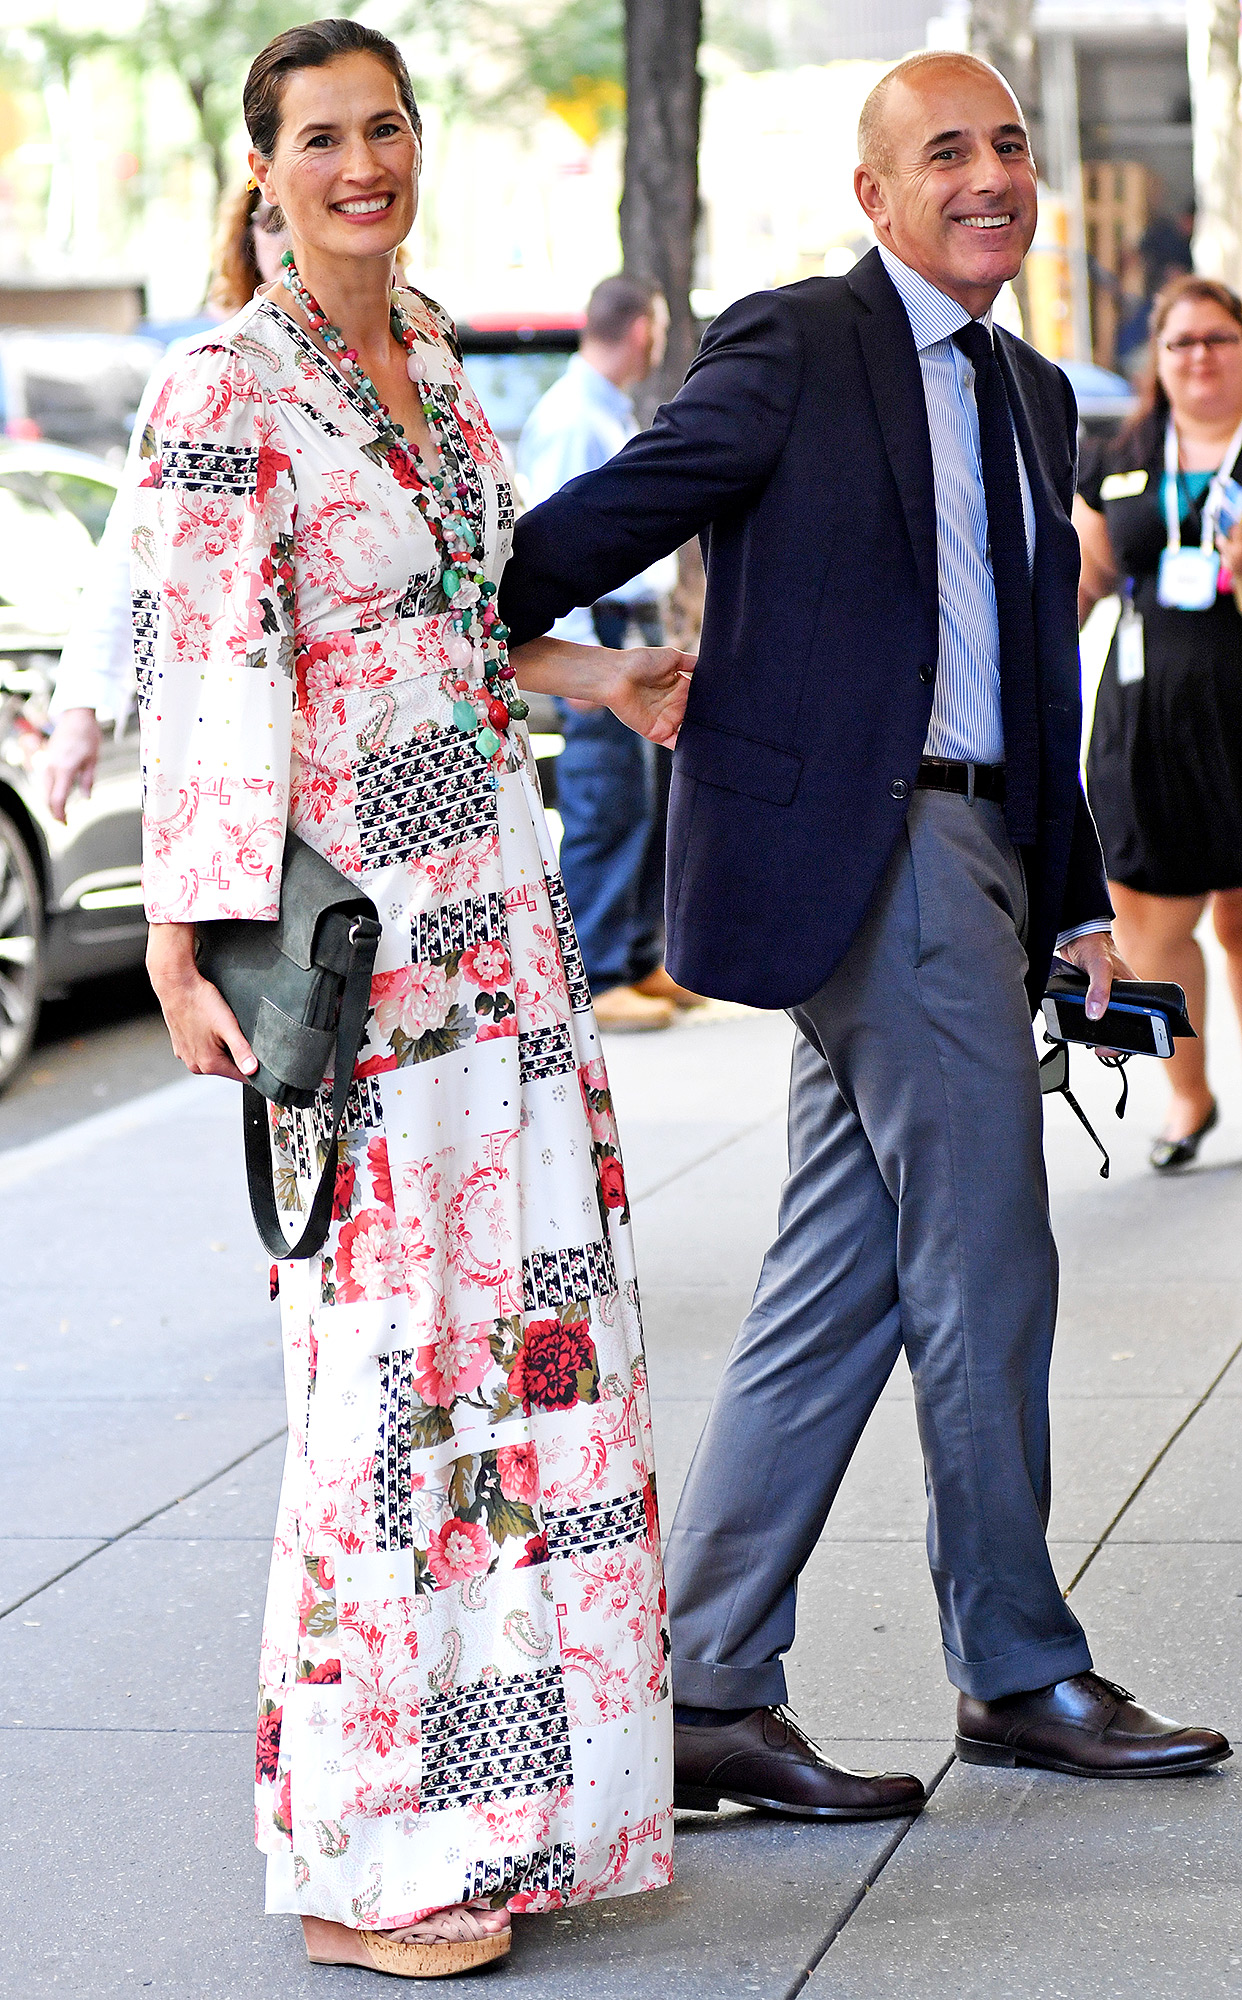 EXCLUSIVE: Matt Lauer and his Wife all smiles while heading out for lunch